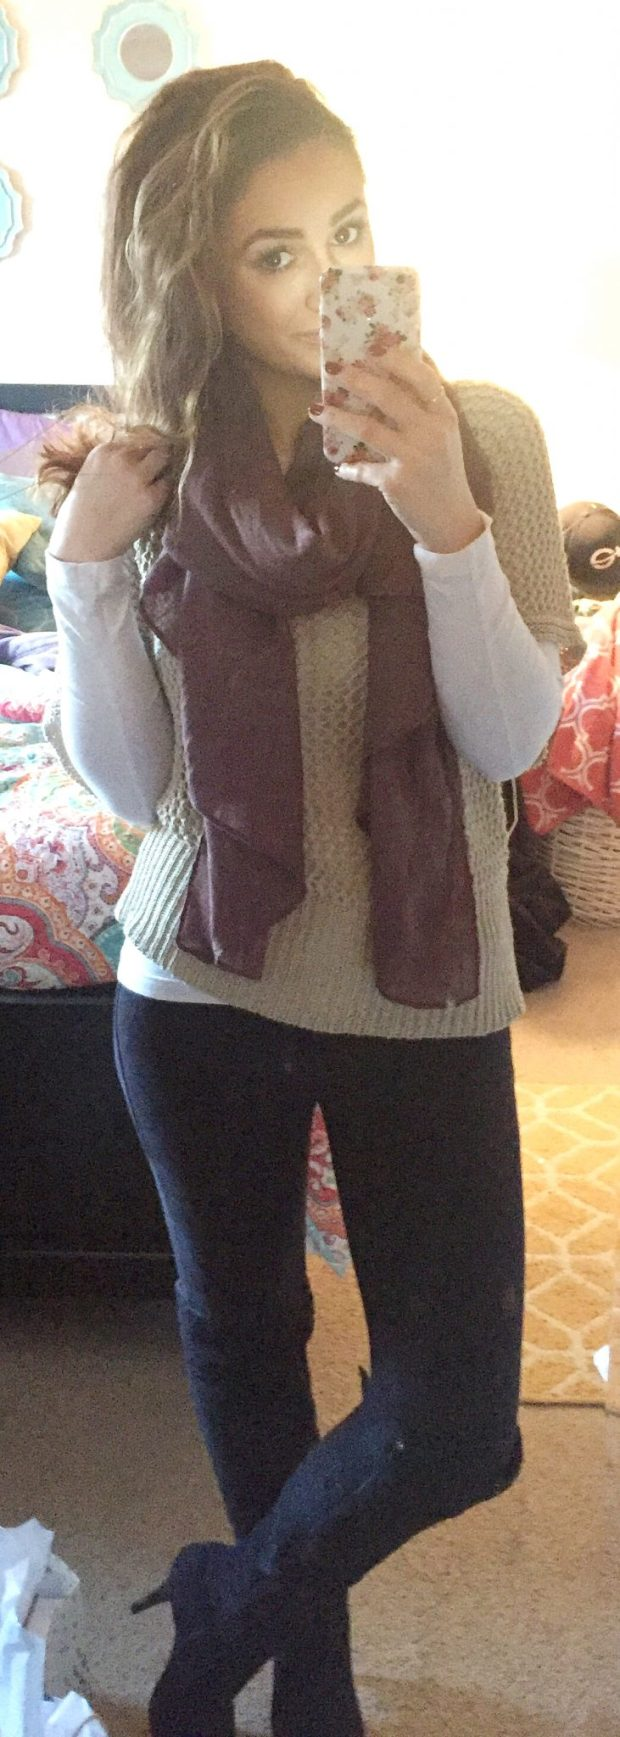 White Long Sleeve: Target // Sweater: Stollen from my sister ;) // Pants: XXX // Boots: Forever 21 // Scarf: Charlotte Russe